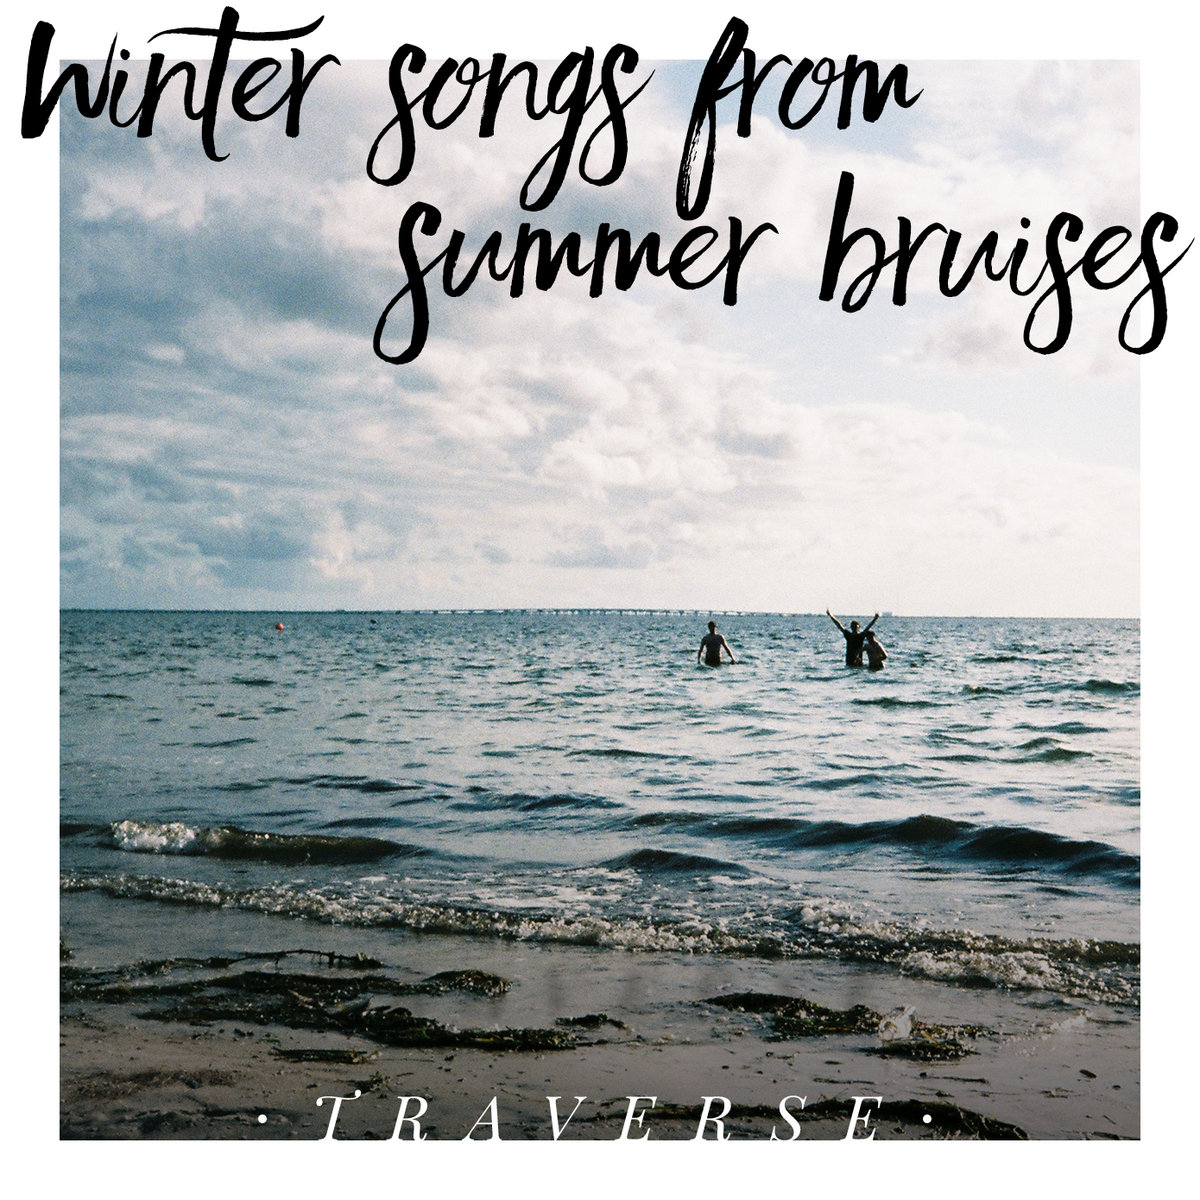 Winter songs from summer bruises | Traverse